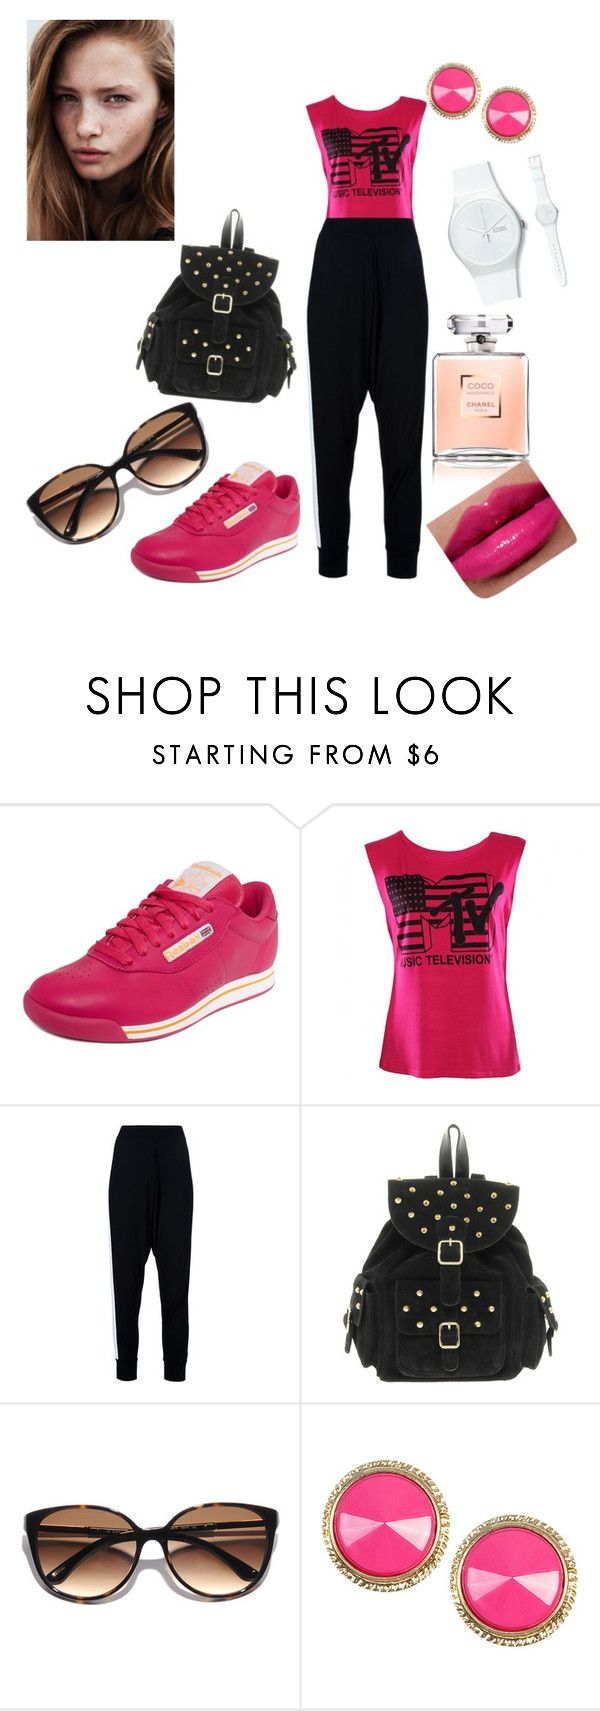 """""""mi pinta de hoy"""" by johana91-91 ❤ liked on Polyvore featuring Reebok, Lounge Lover, ASOS, Kate Spade, Swatch, Wet Seal and Chanel"""